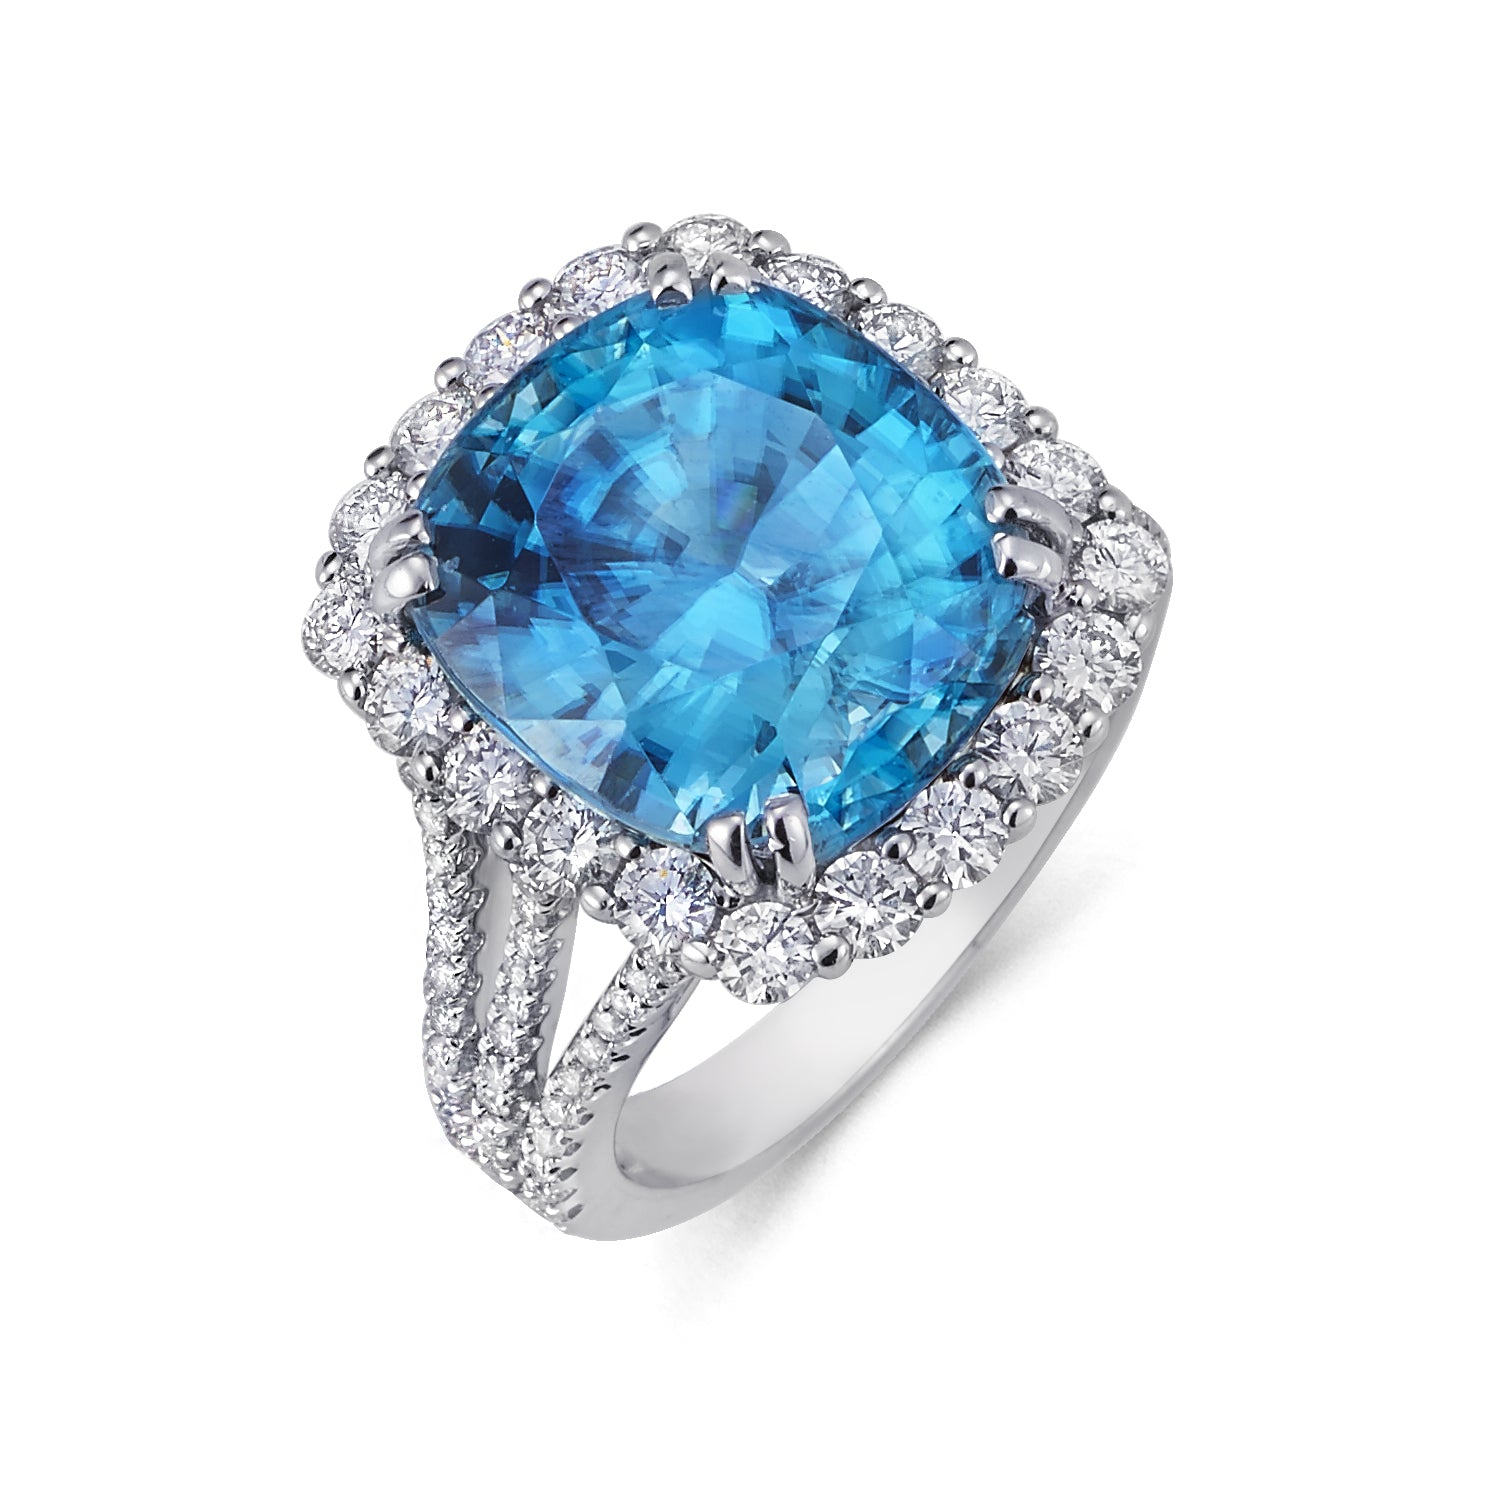 Sold: Blue Zircon & Diamond Halo Ring